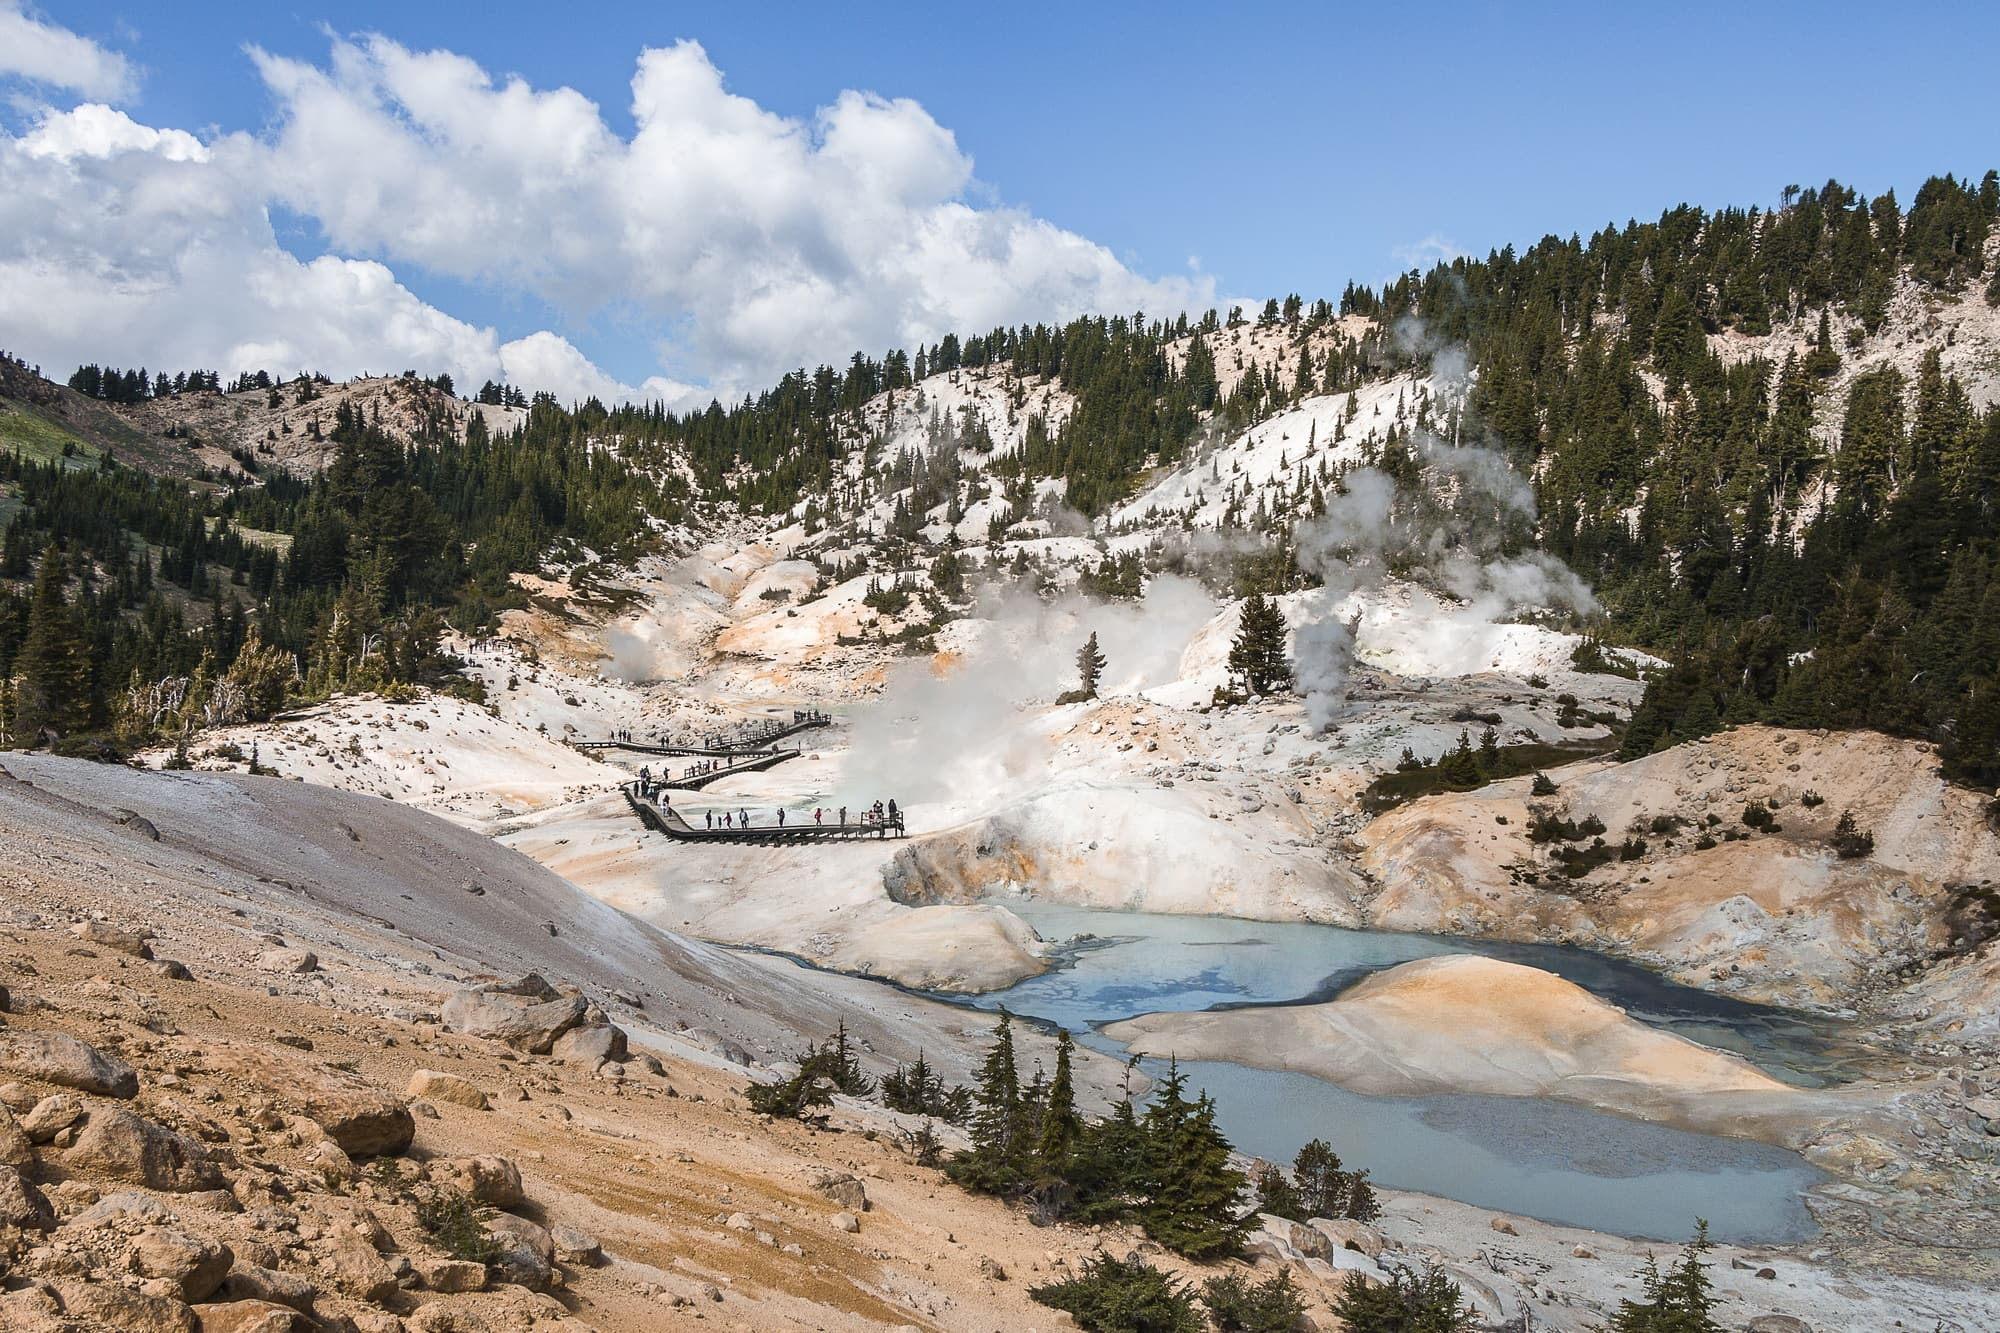 Bumpass Hell // Plan your Lassen National Park hikes with our roundup of the best hikes, including boiling hot pots, alpine lakes, and big summits.